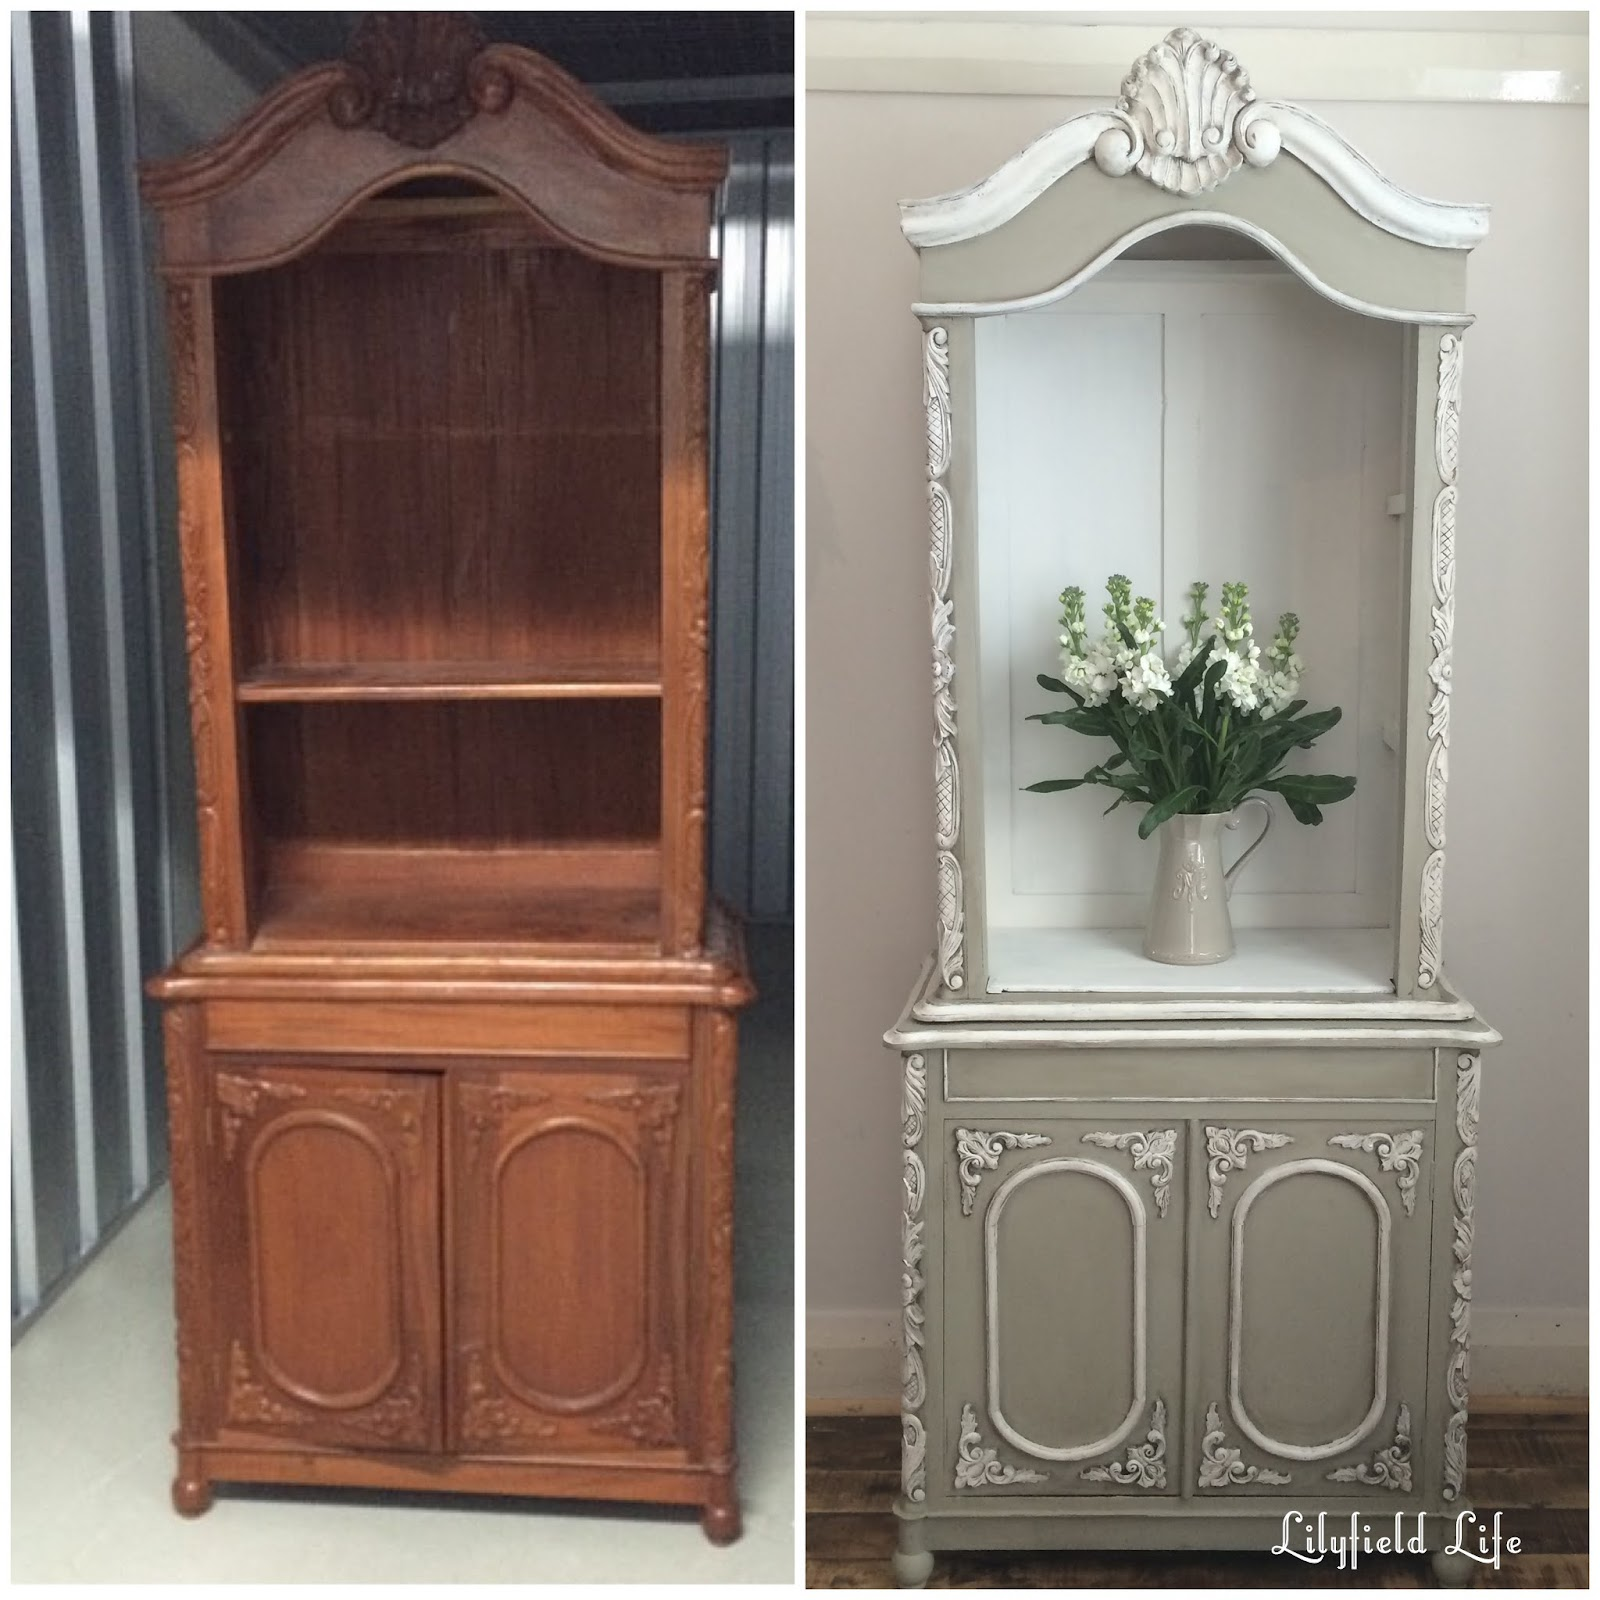 Lilyfield Life: Before and After: Hand painted French Style Cabinet